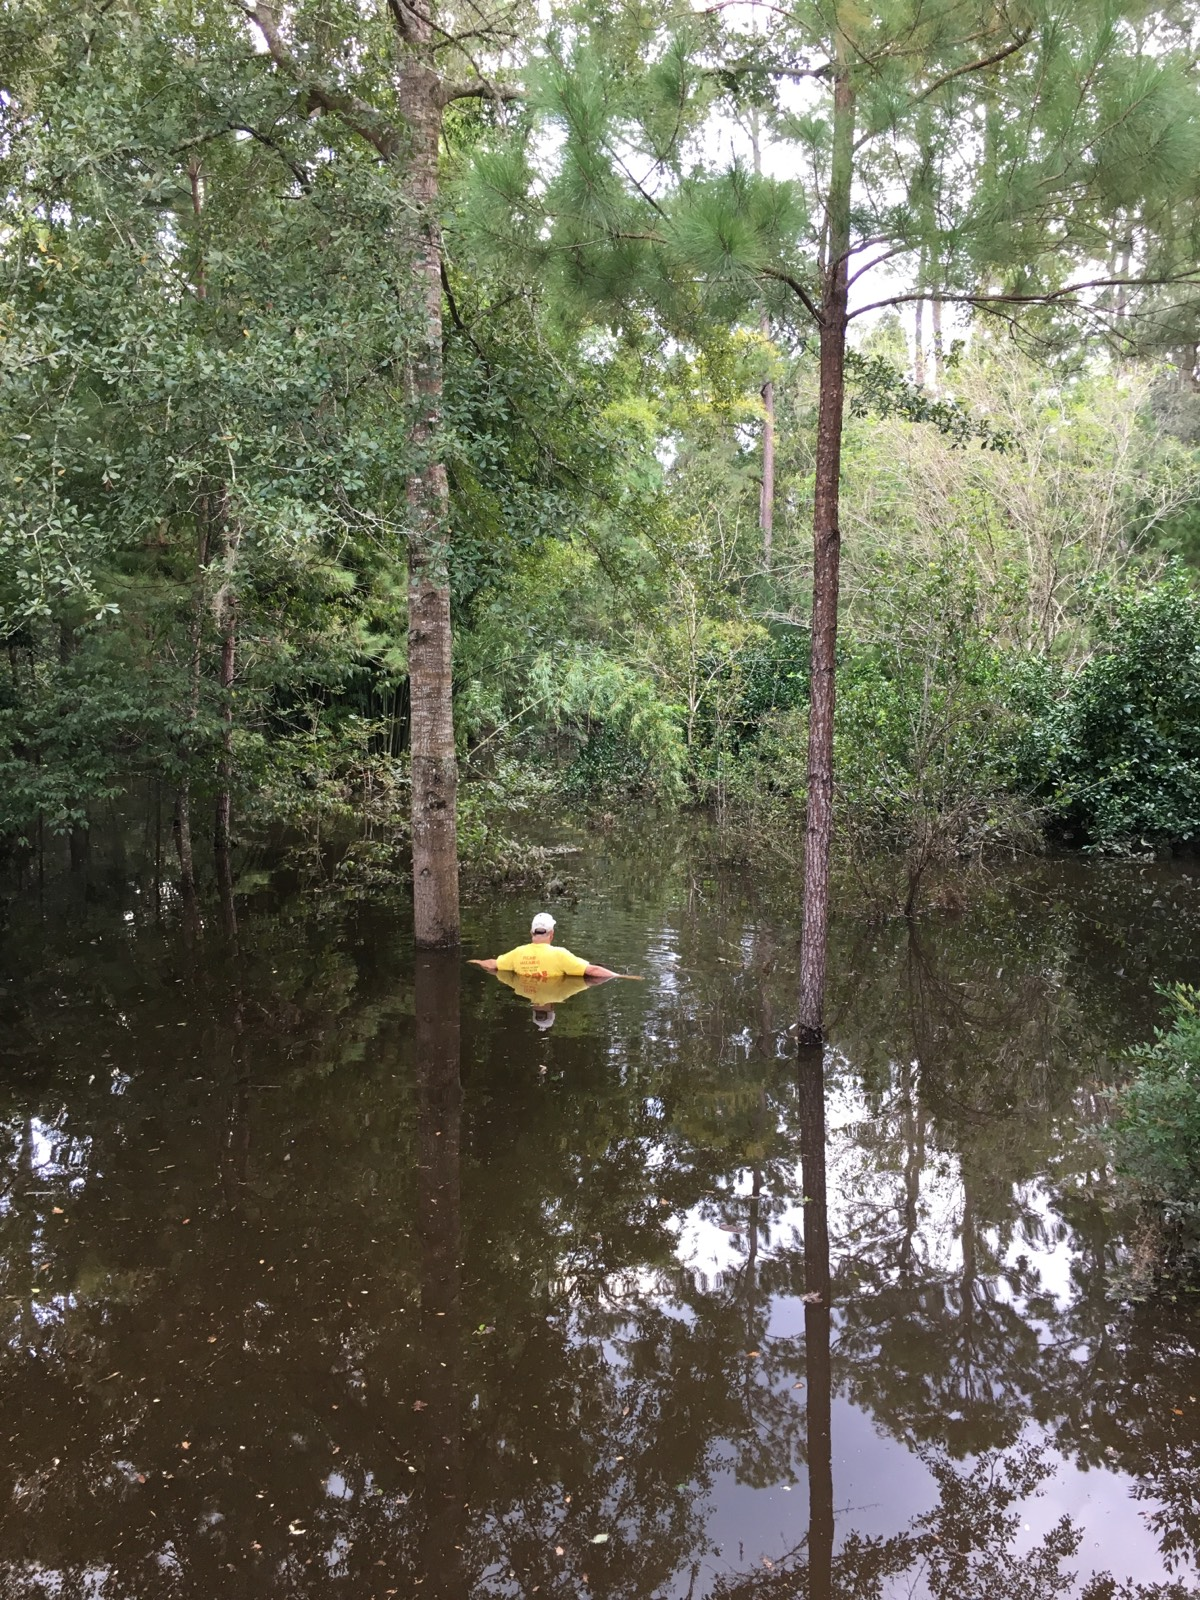 meadowbrook residents form committee to take action on flooding